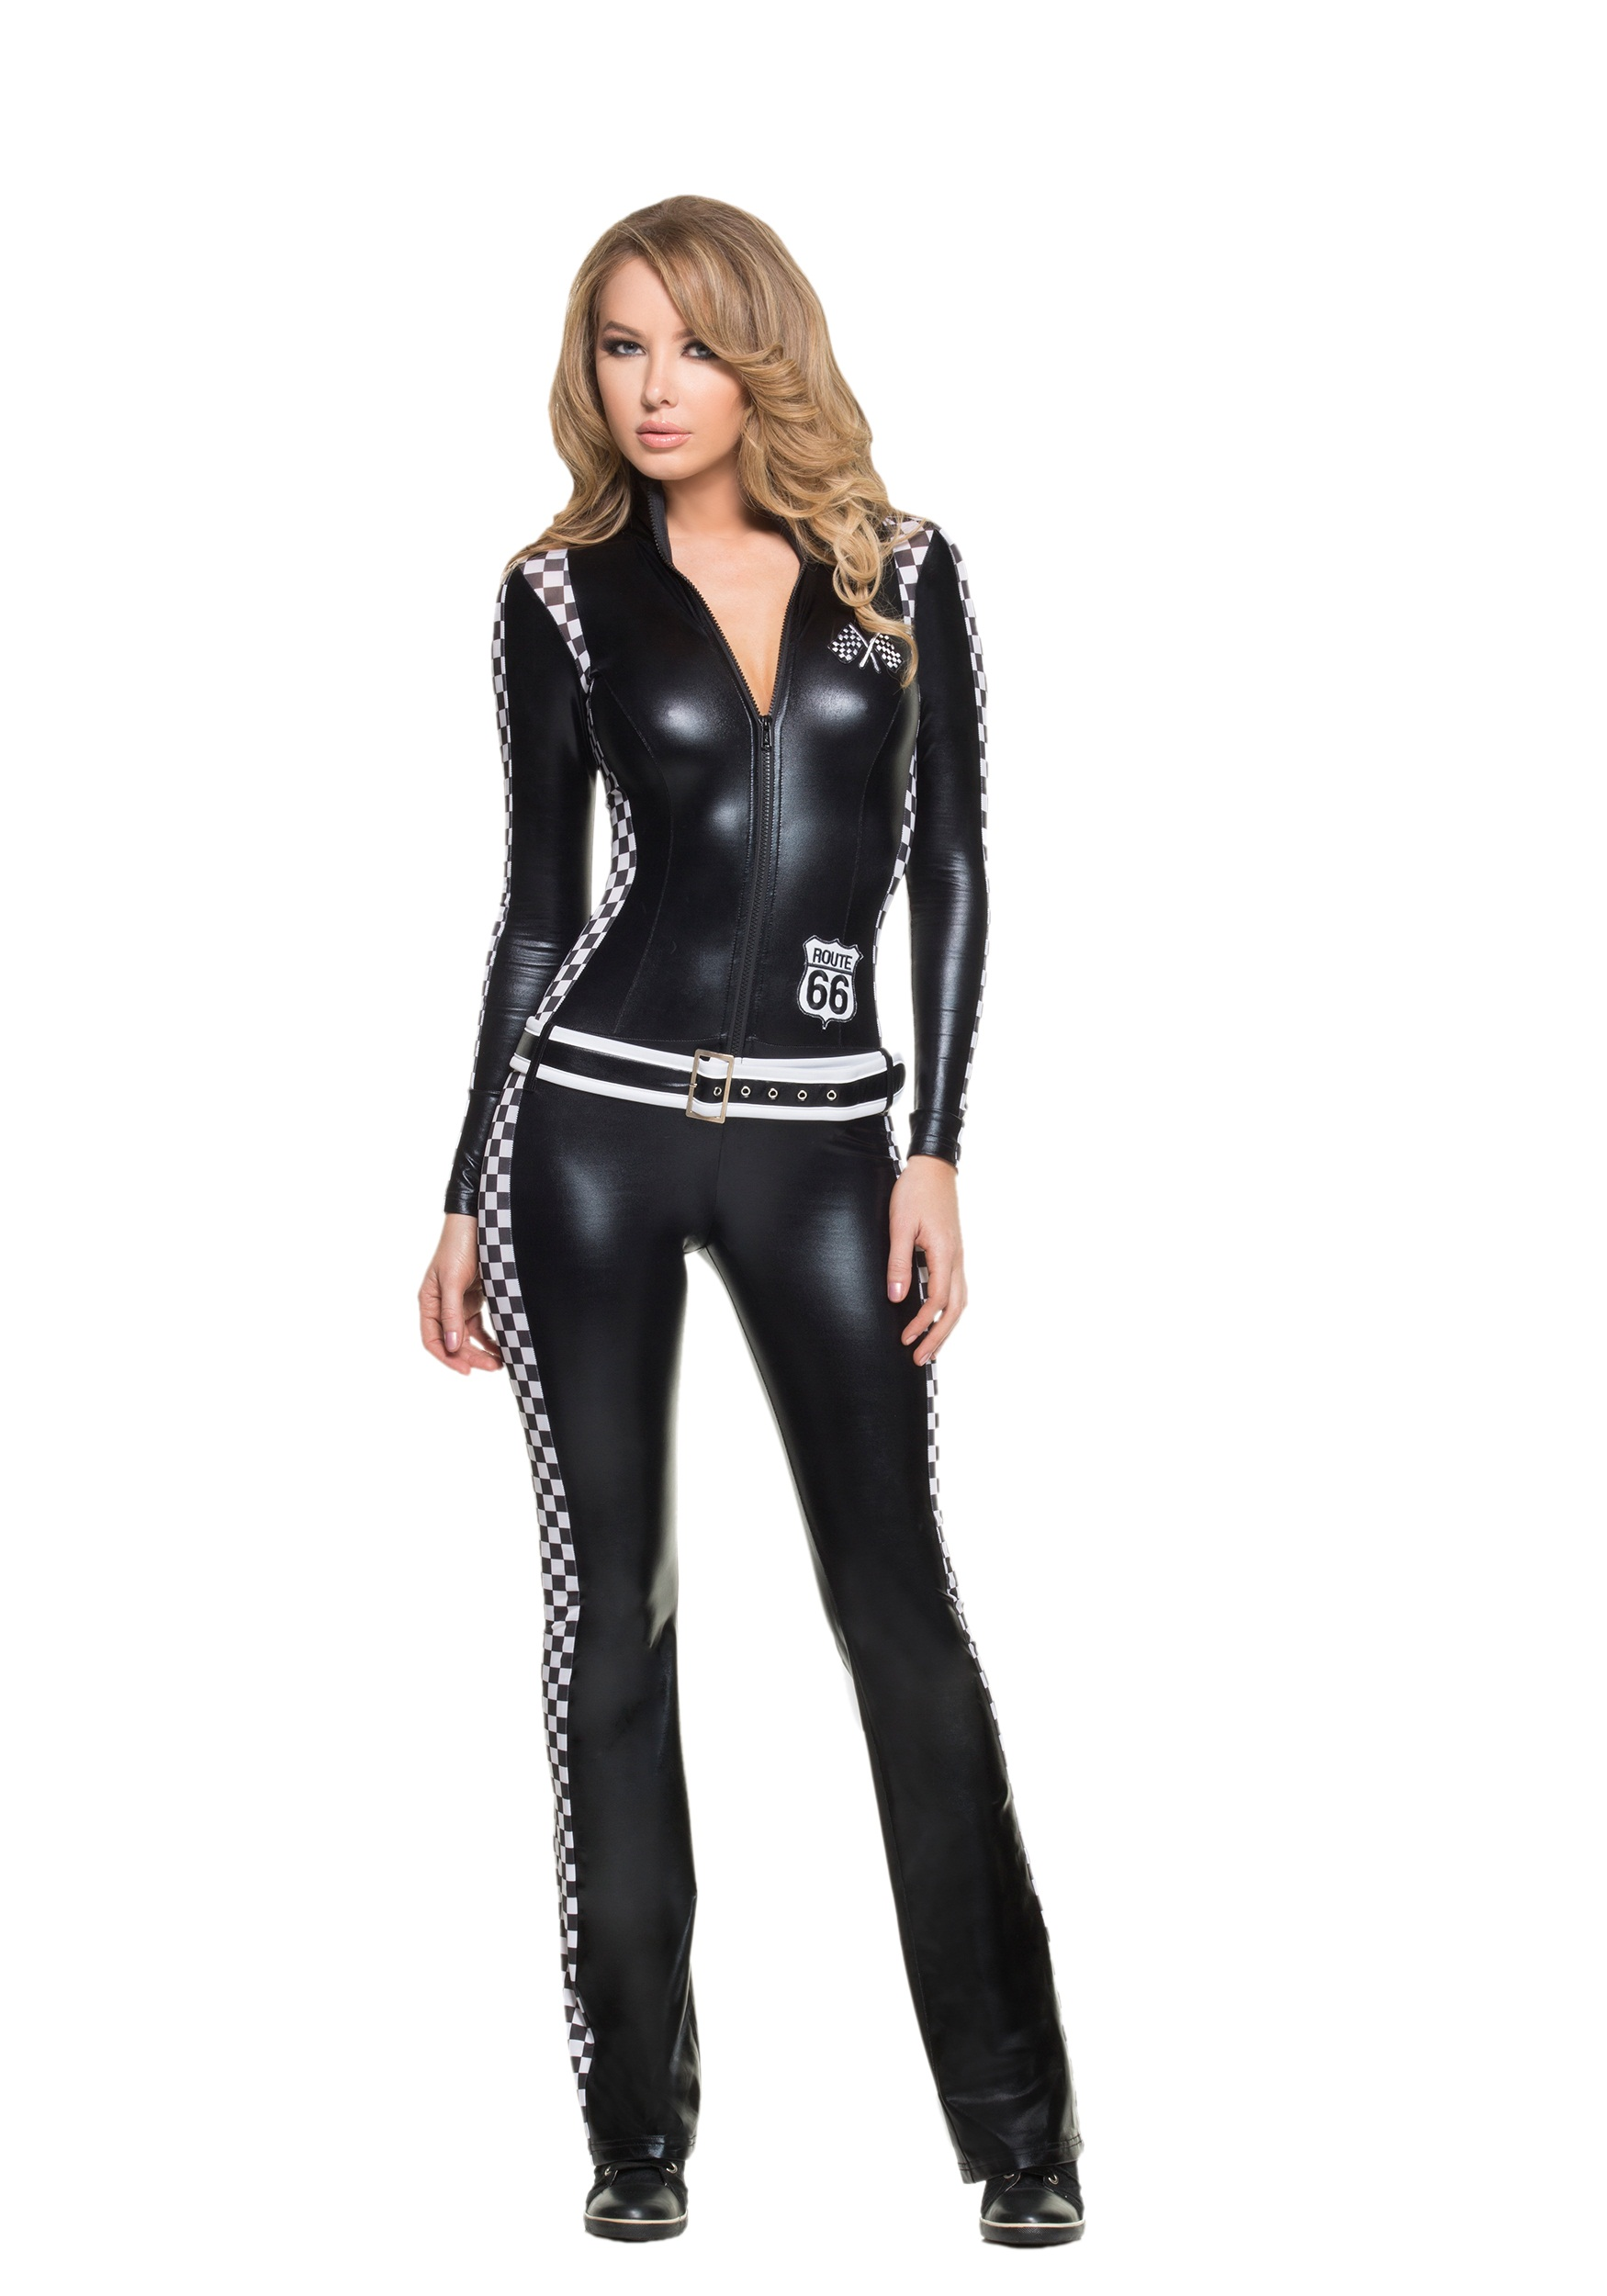 Womens Racer Girl Costume-3214